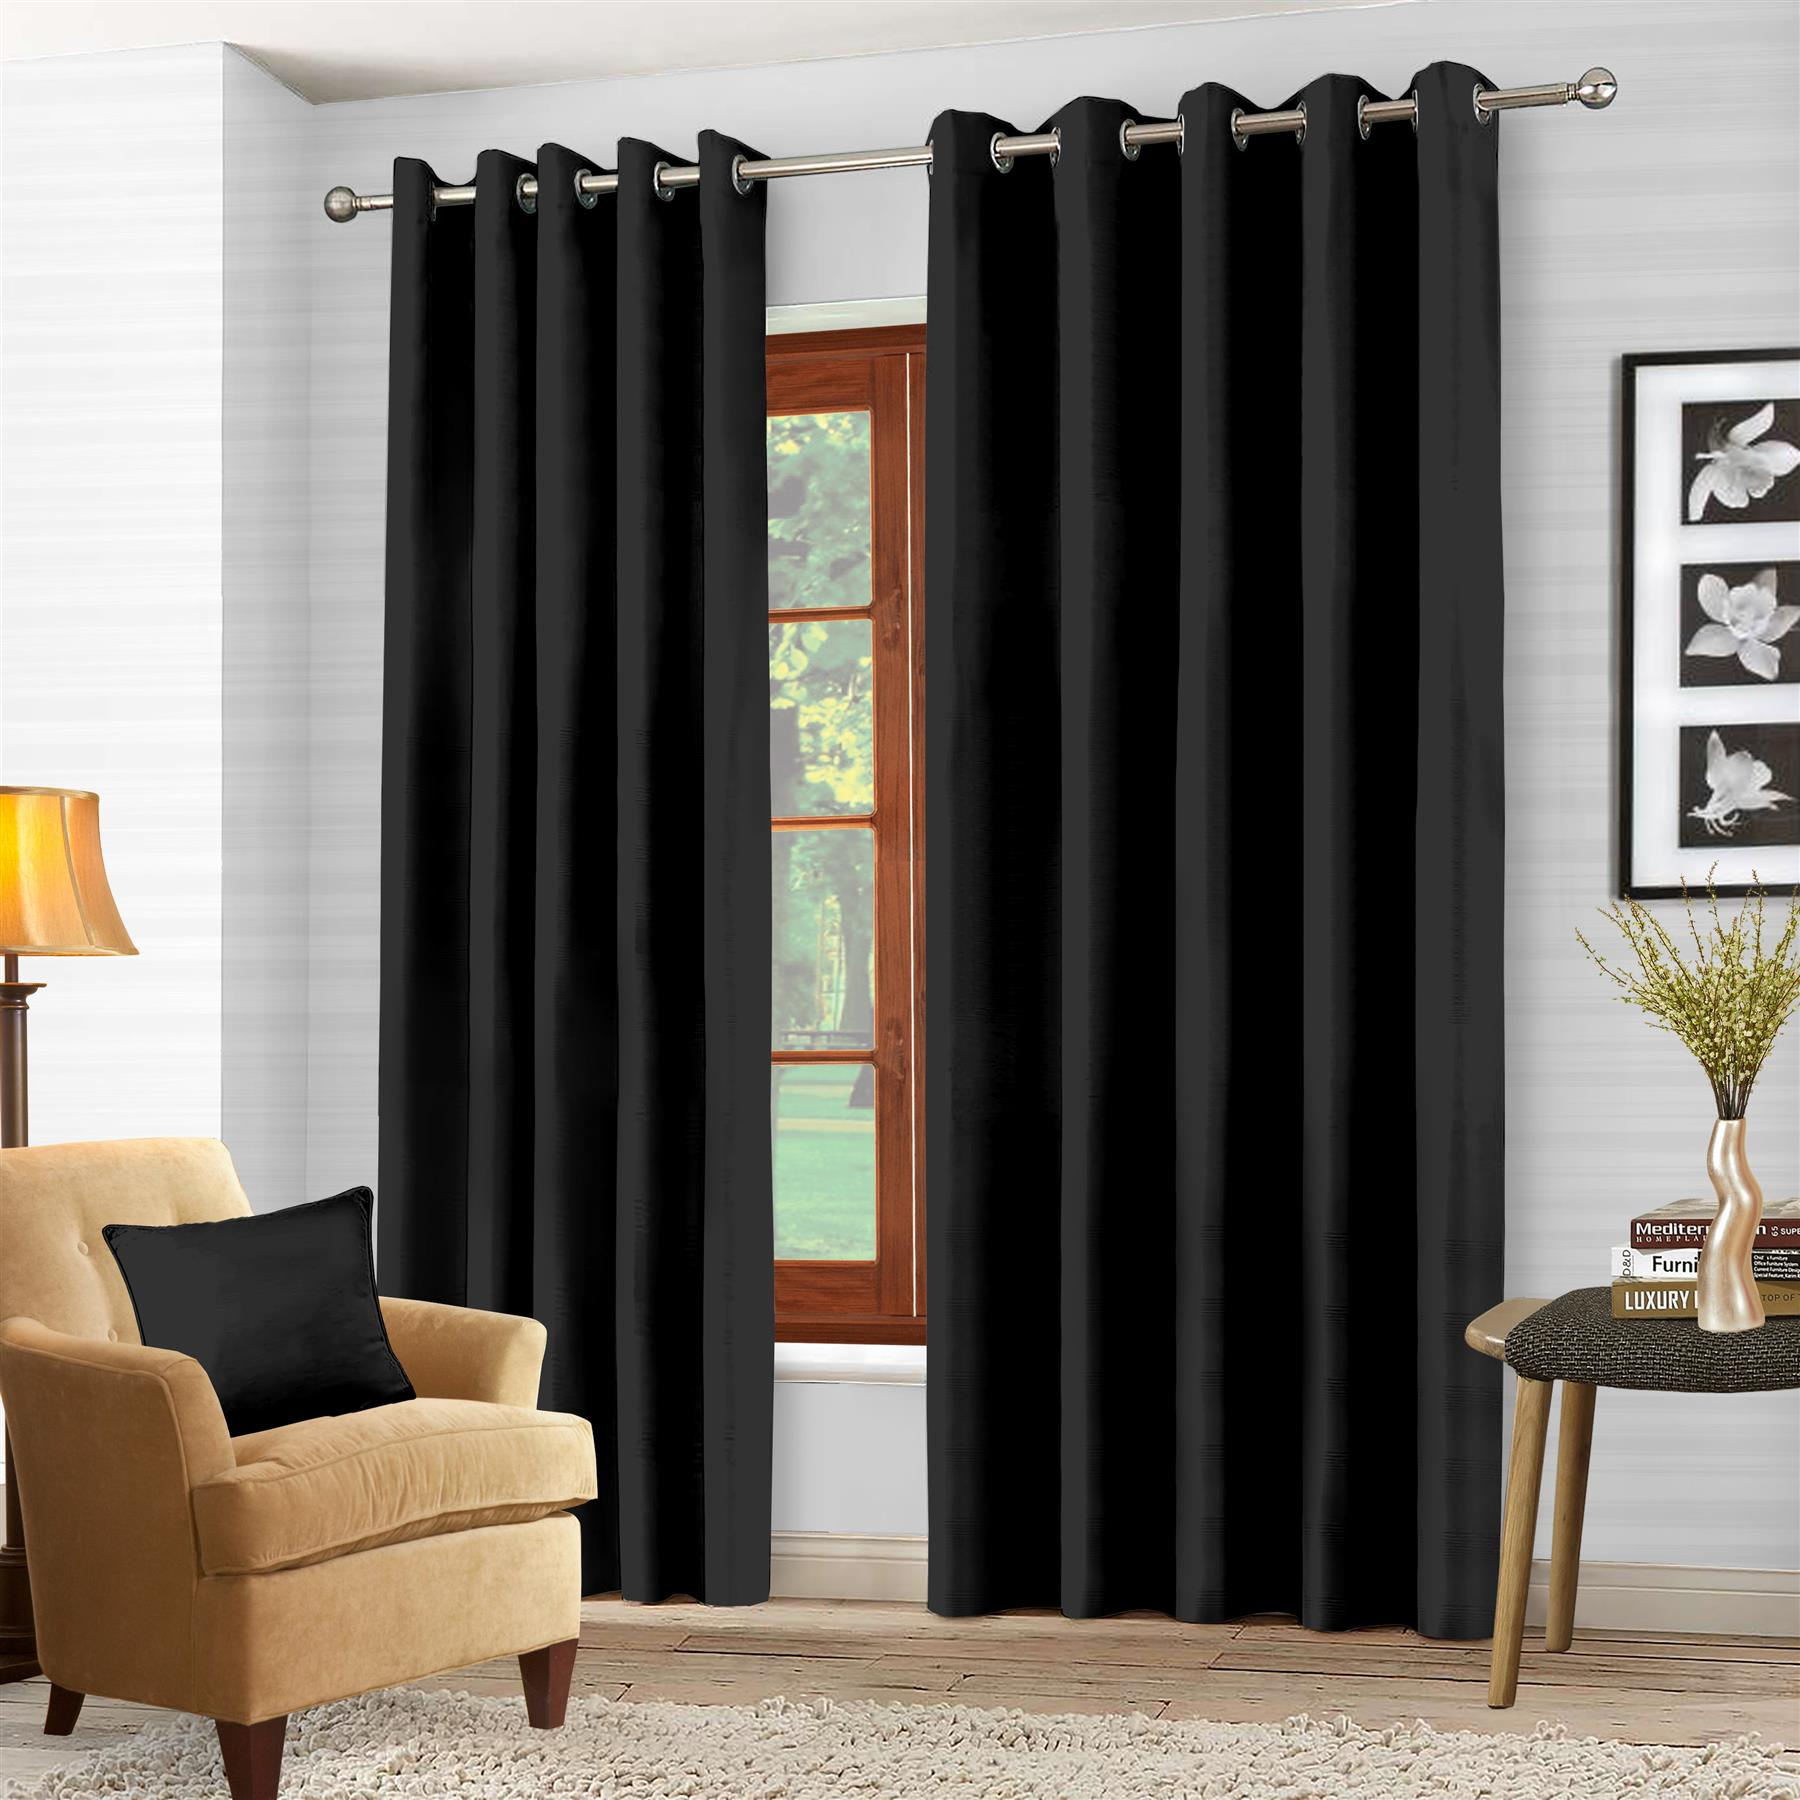 Luxury-Thermal-Blackout-Eyelet-Ring-Top-Curtains-Pair-with-tie-backs thumbnail 7